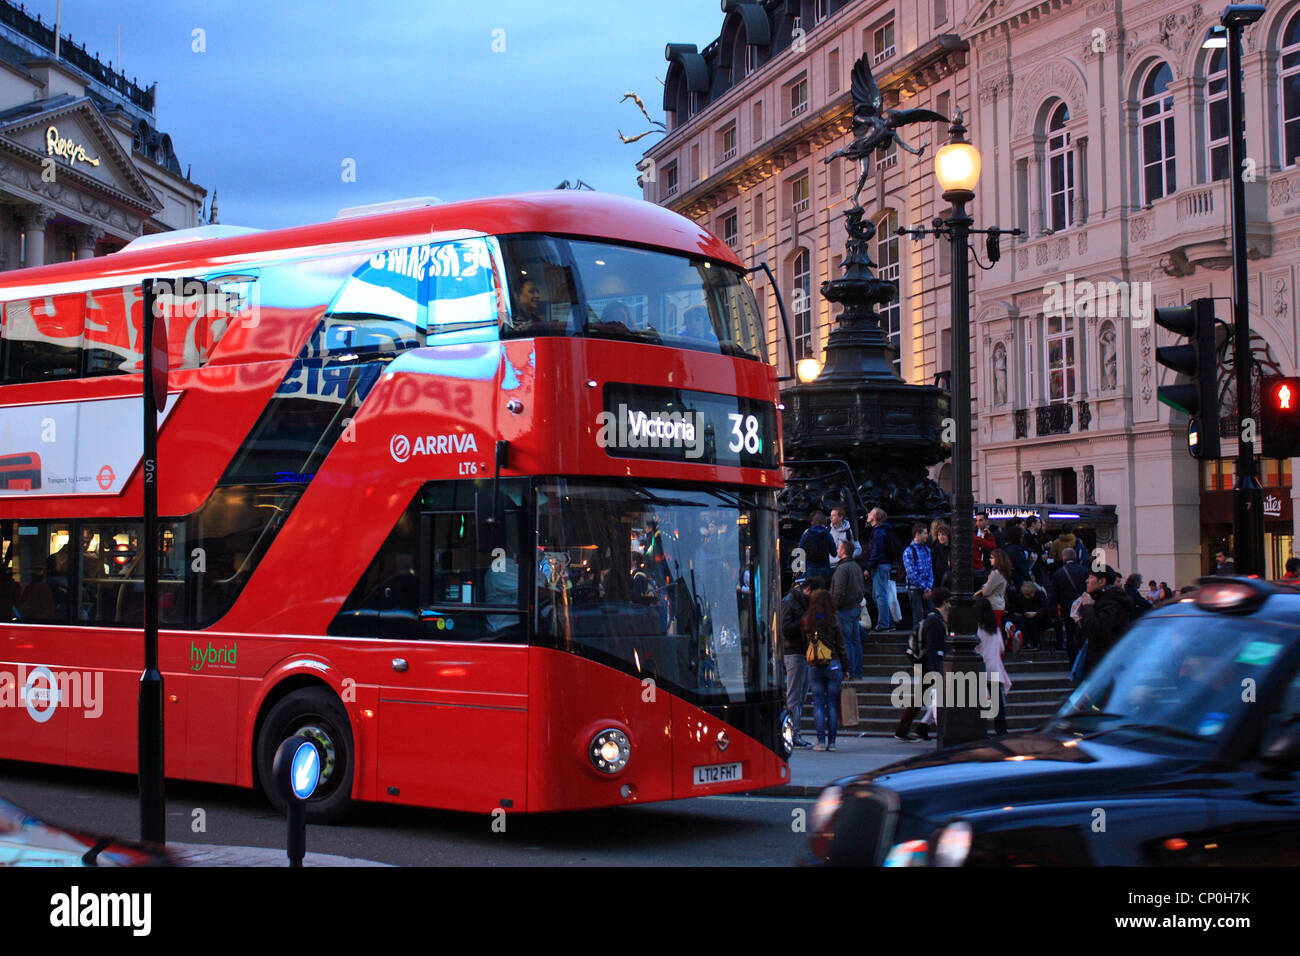 New bus for London in Piccadilly Circus - Stock Image